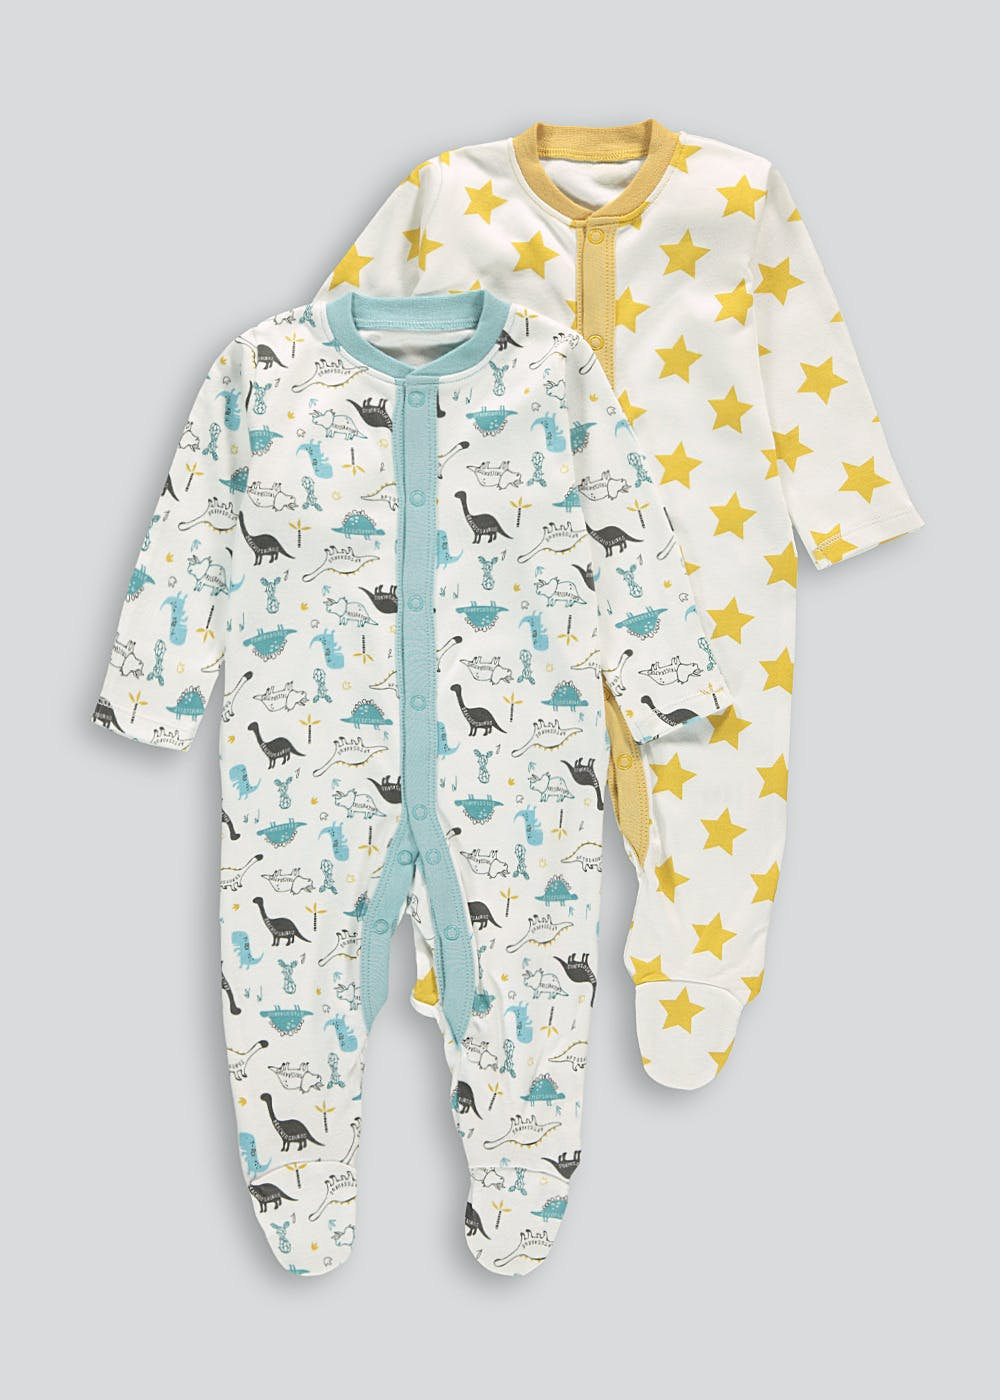 Unisex 2 Pack Dinosaur Star Baby Grows (Tiny Baby-18mths) – Multi